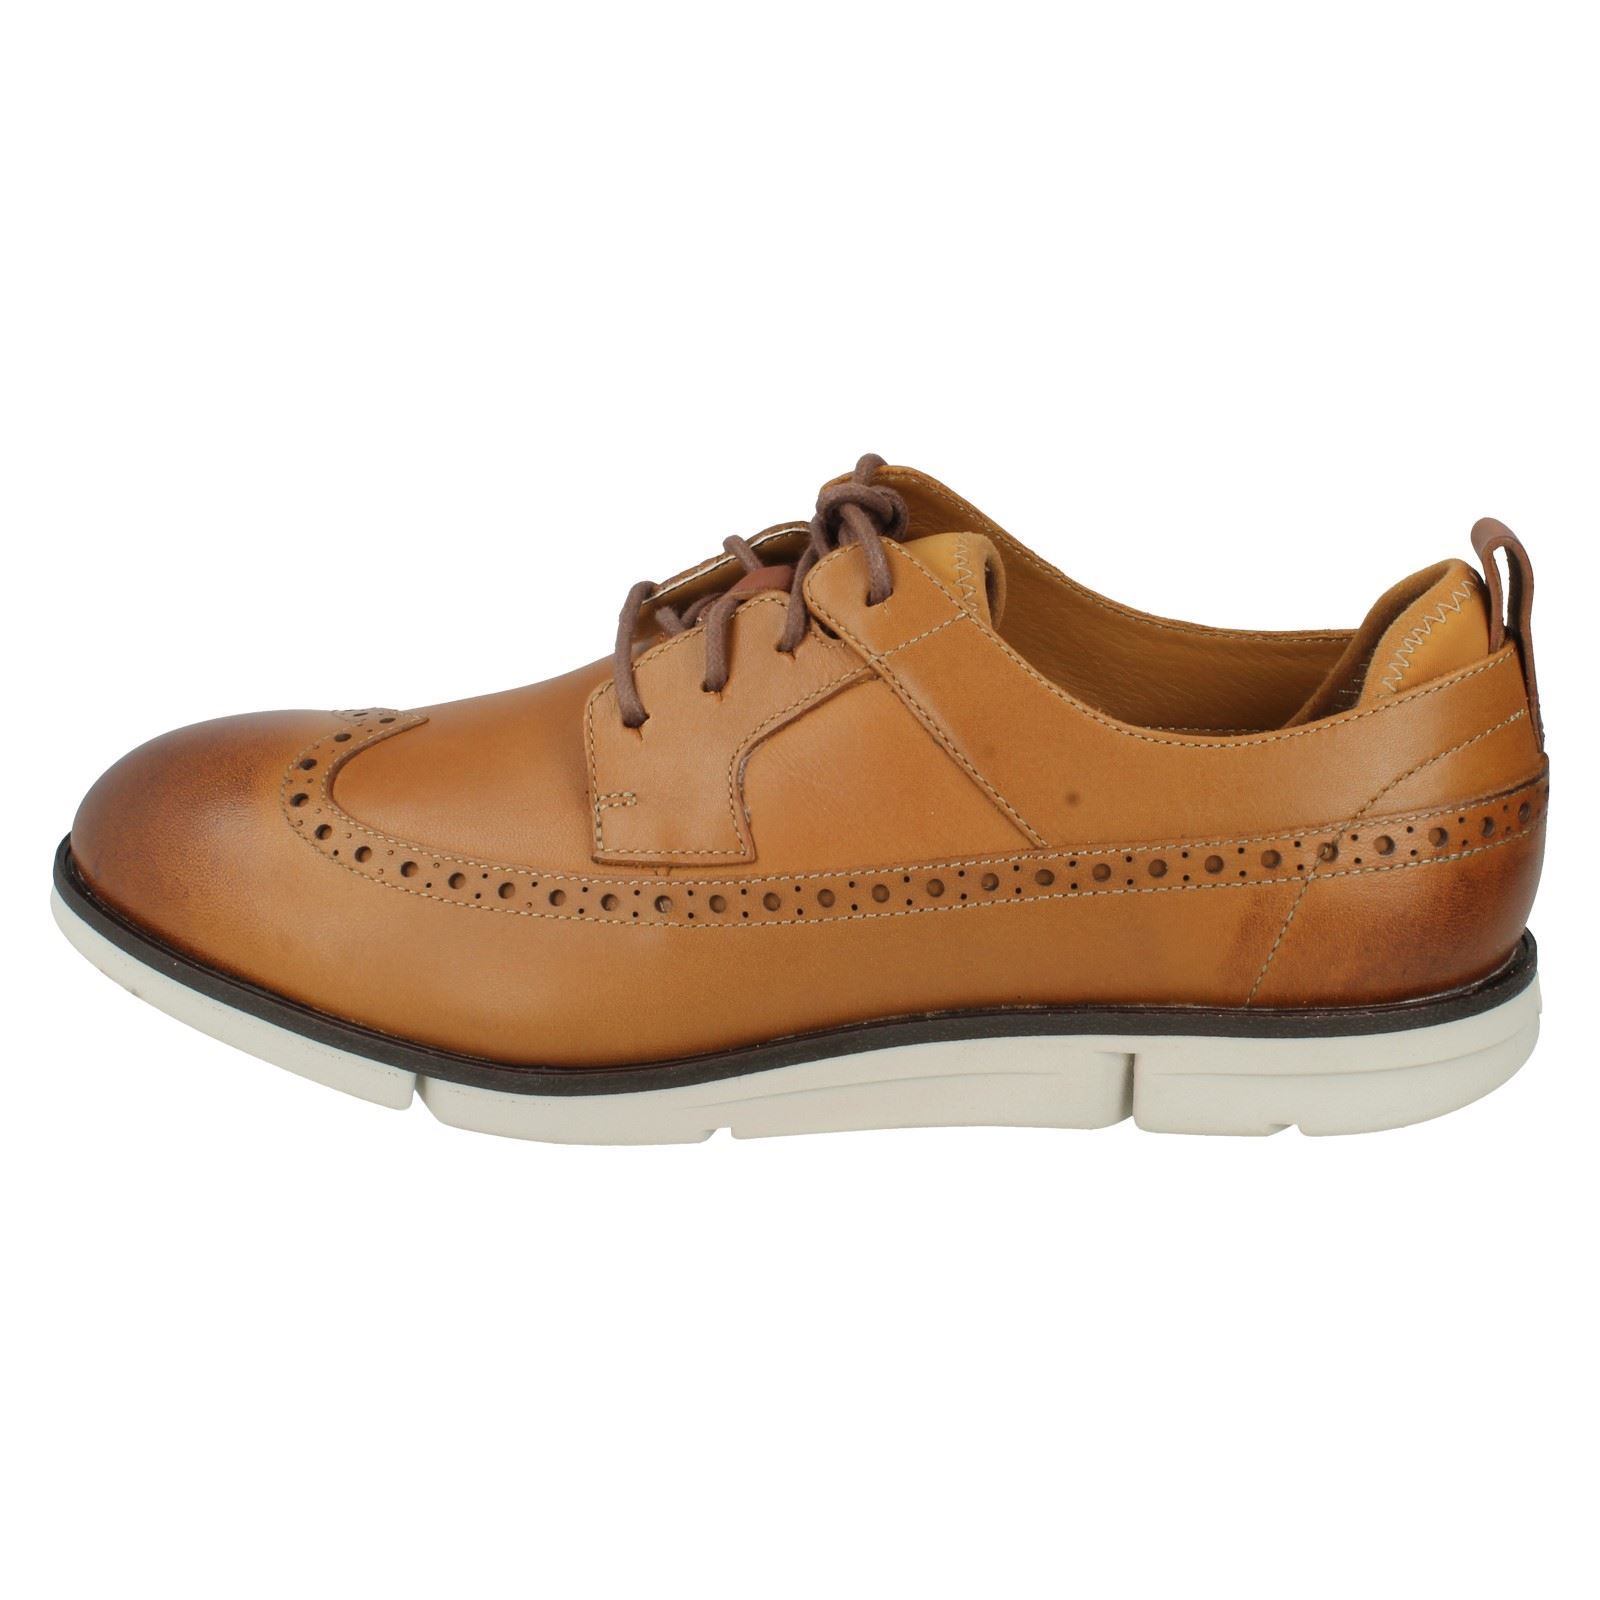 Men's Clarks Smart Lace Up Shoes Label - Trigen Limit